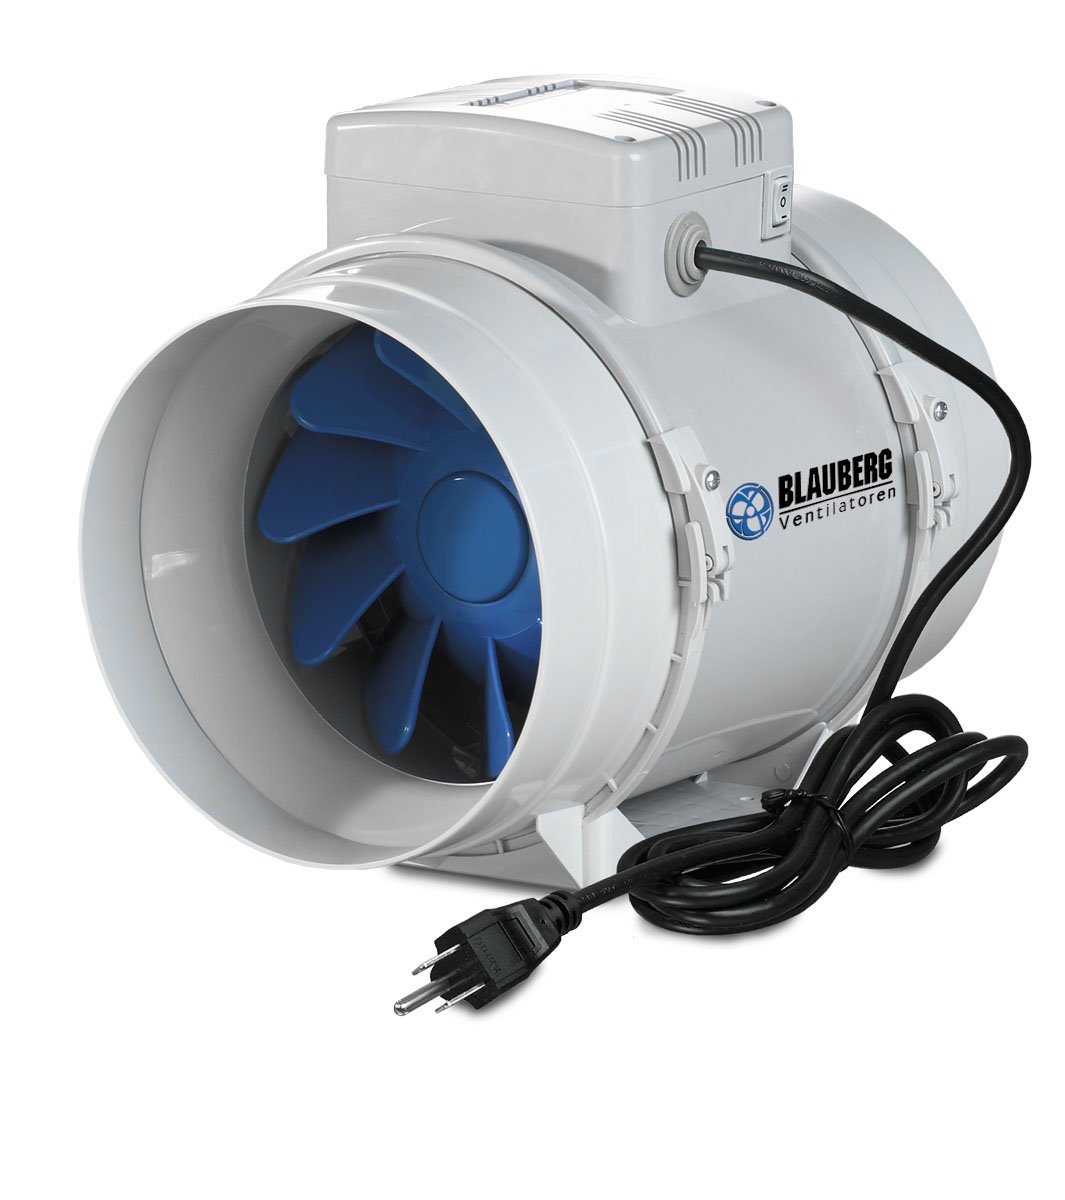 High Flow Vent Fan : Hydrofarm blauberg inline mixed flow fan inch hf